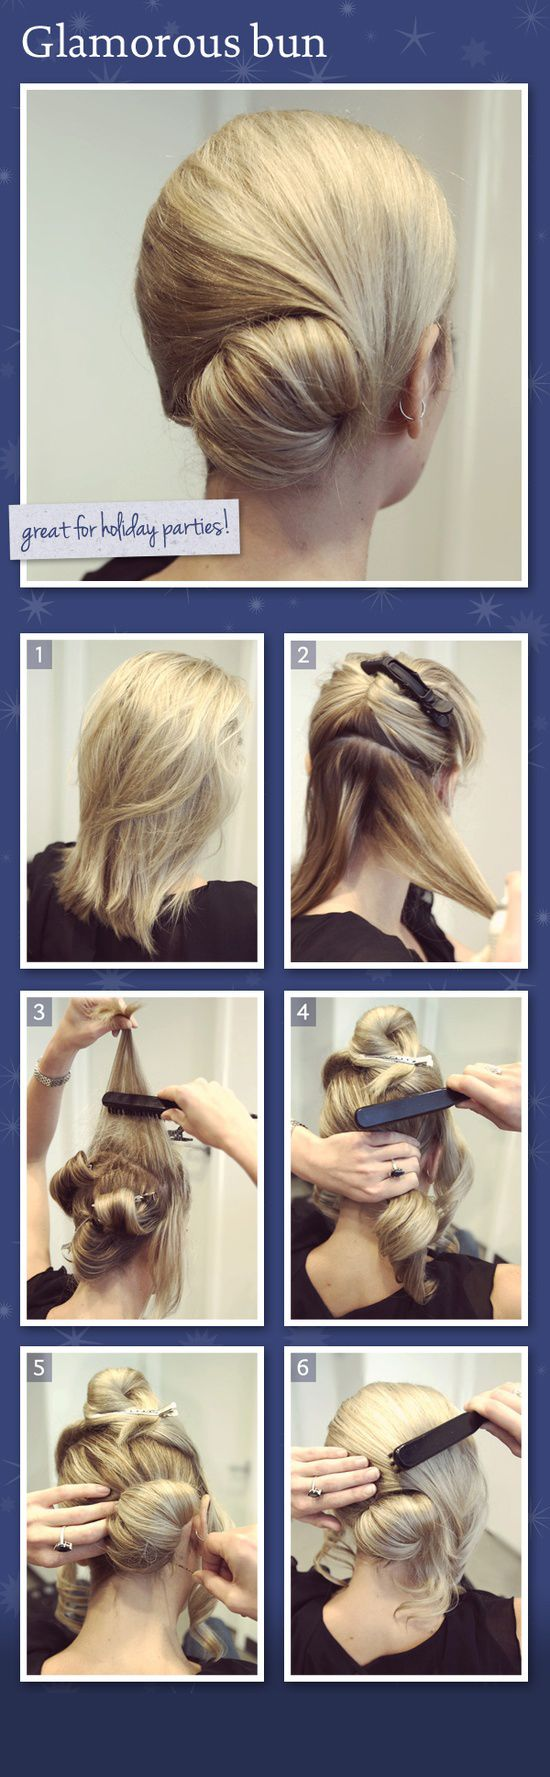 best self styling images on pinterest make up looks haircut